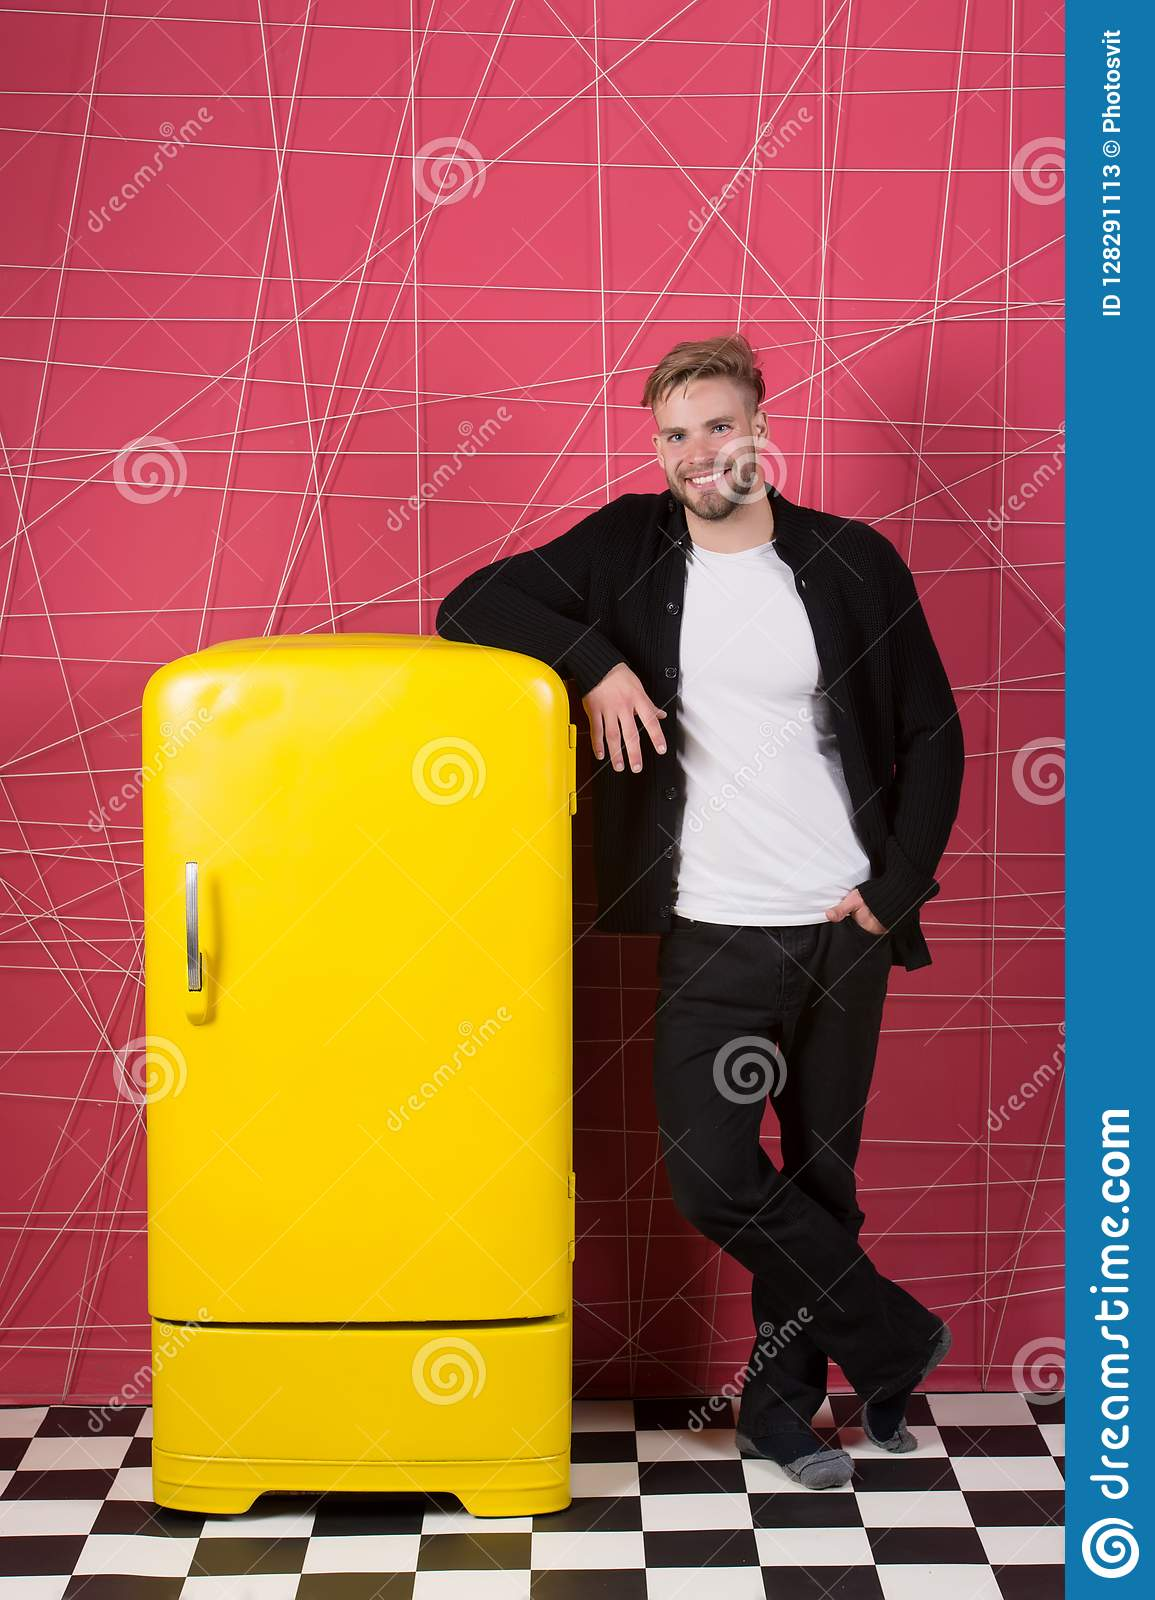 Bright fridge household appliances interior object. Designer adding accent to interior. Man lean retro vintage yellow